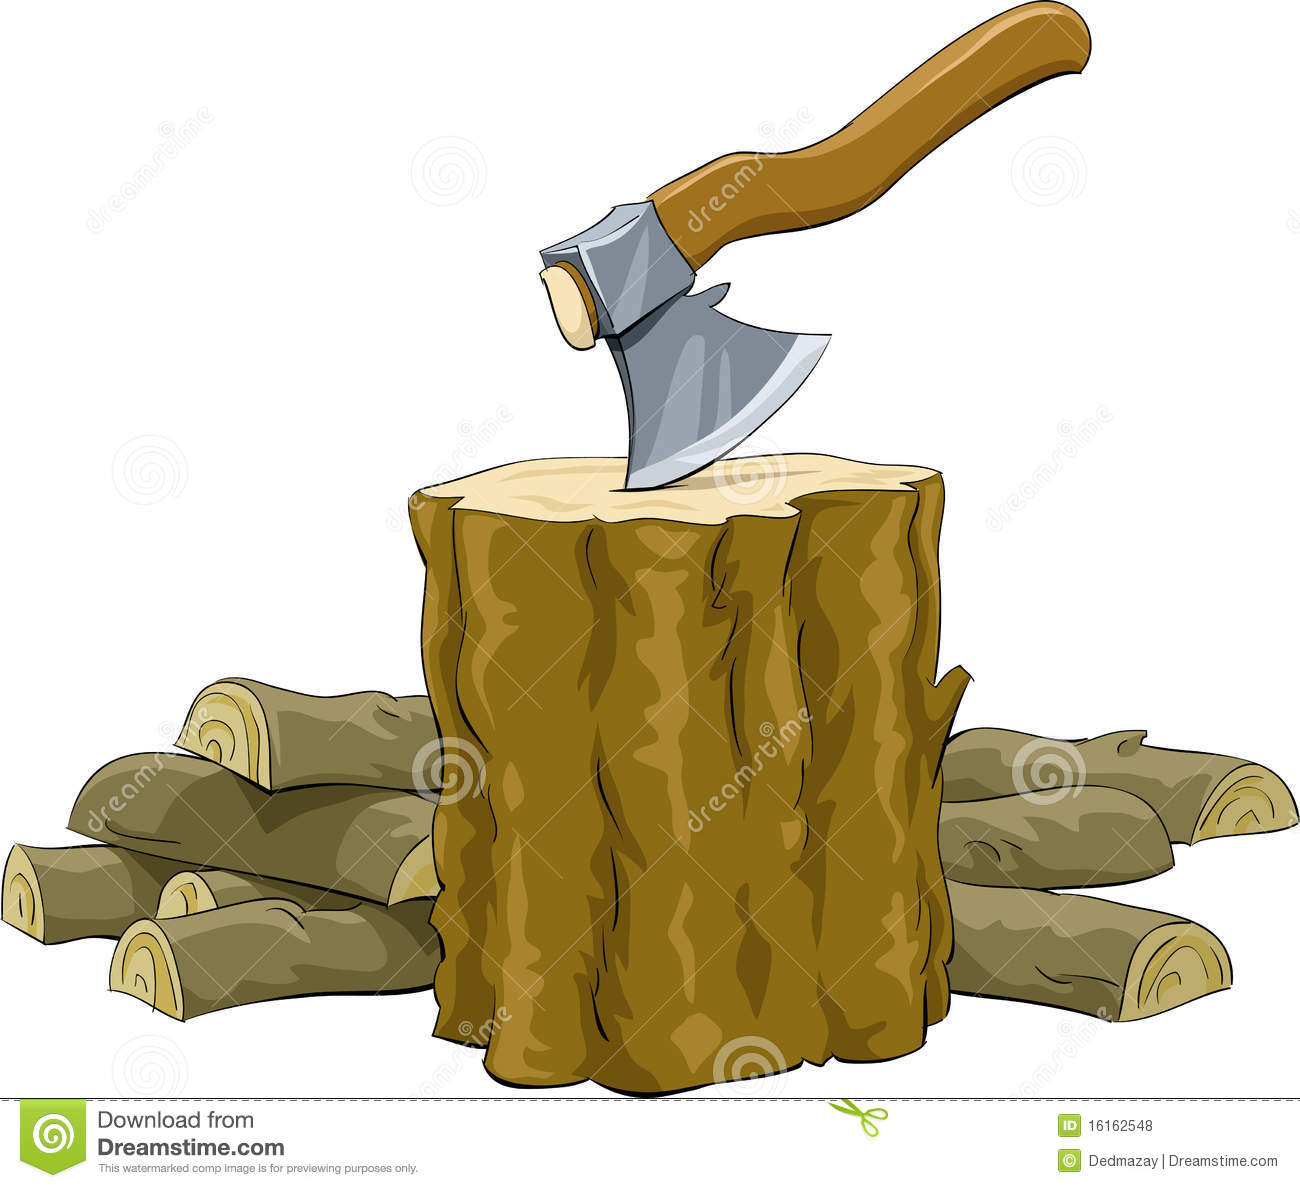 Brennolz lighter clipground stump. Firewood clipart